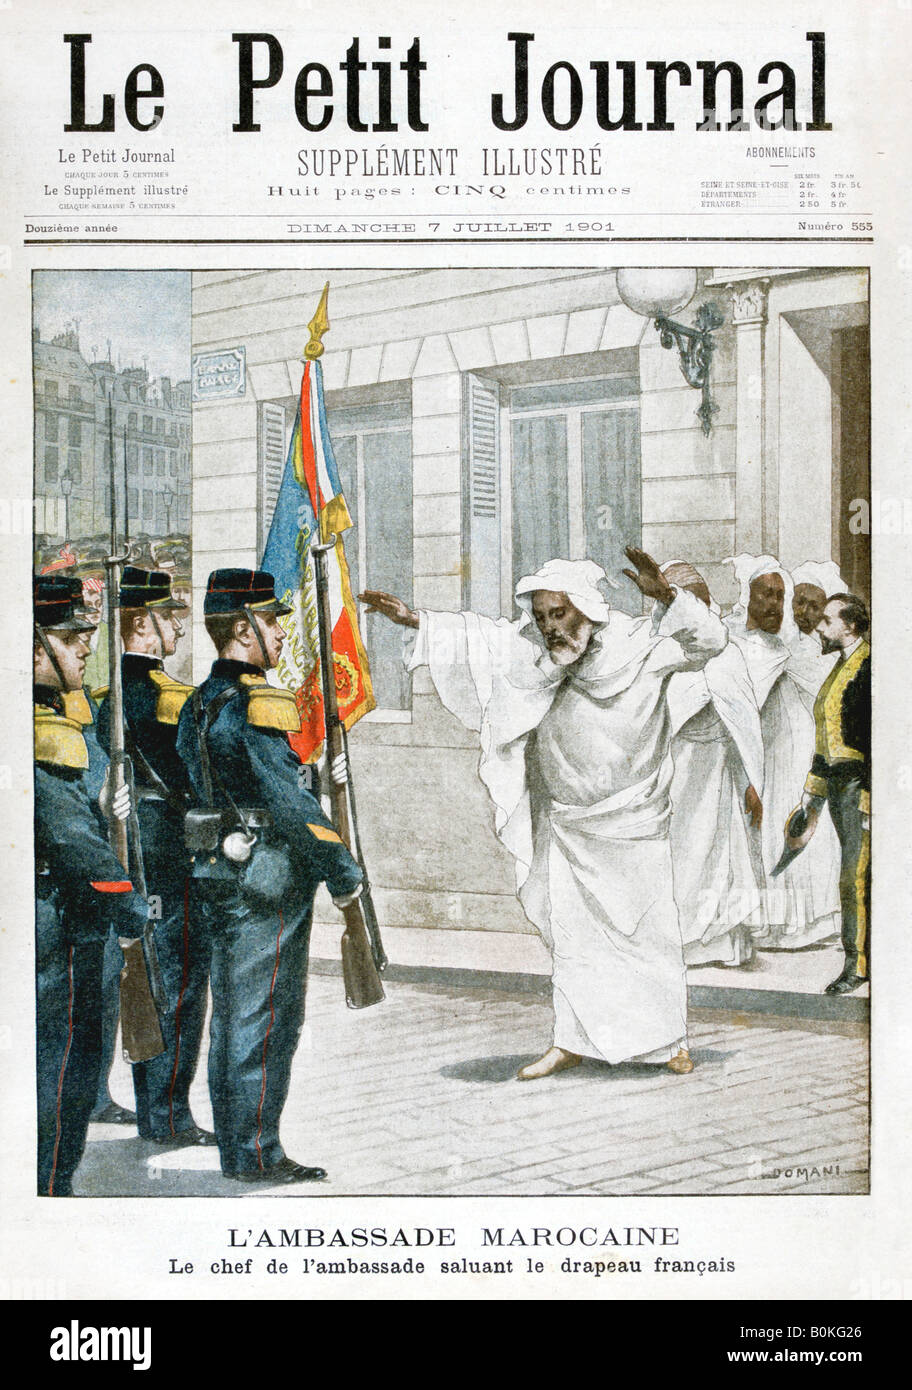 Moroccan Embassy, The chief ambassador saluting the French flag, 1901. Artist: Unknown - Stock Image